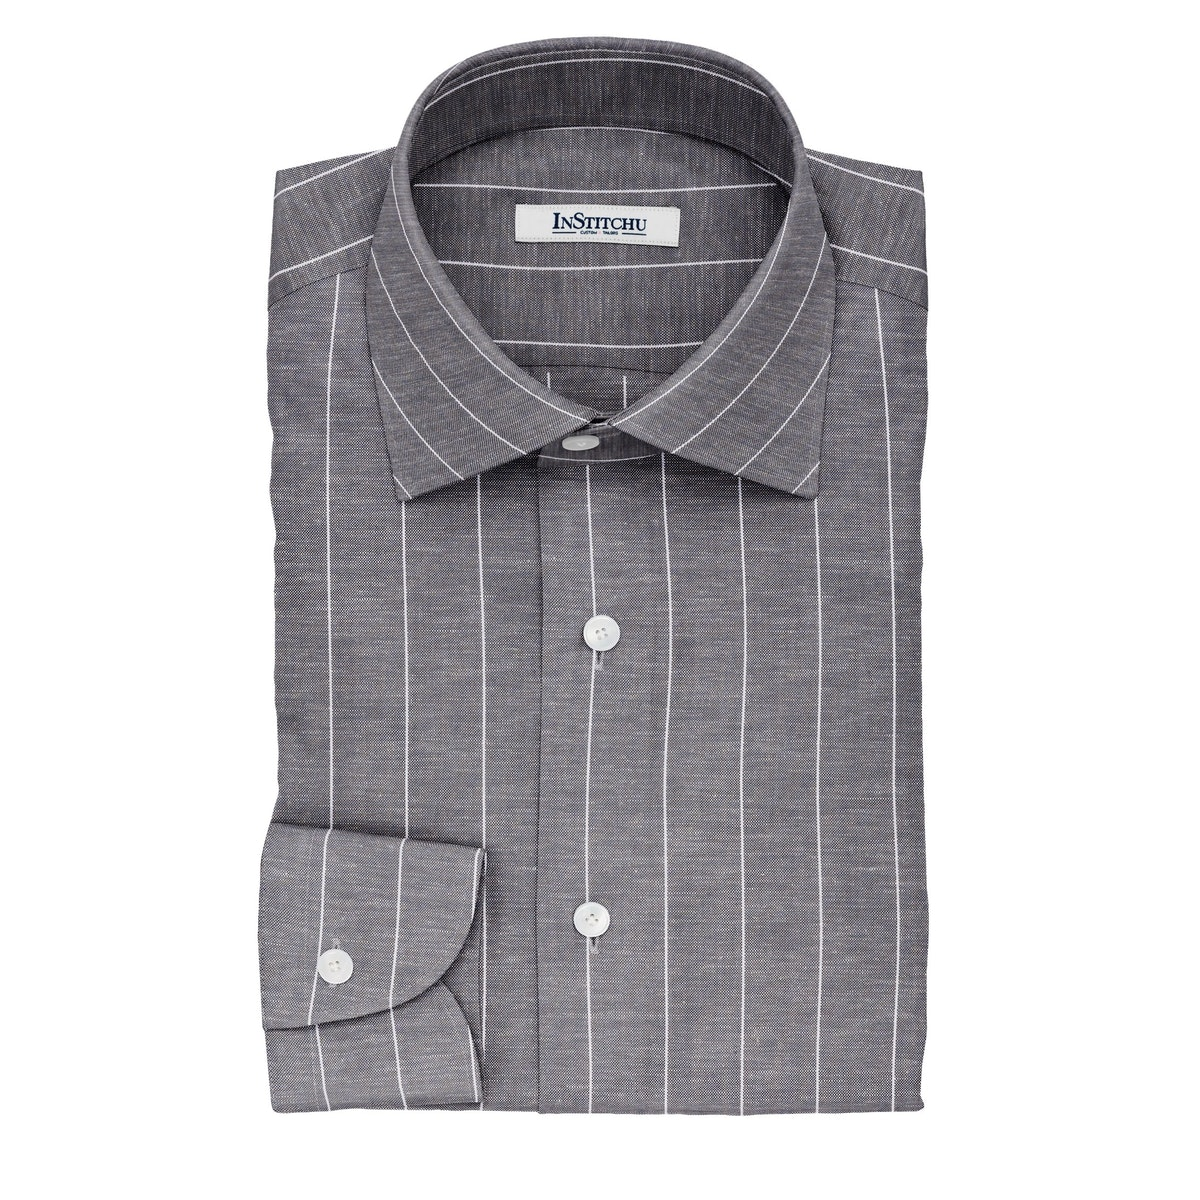 InStitchu Collection The Ludlum Black and White Striped Linen Blend Shirt